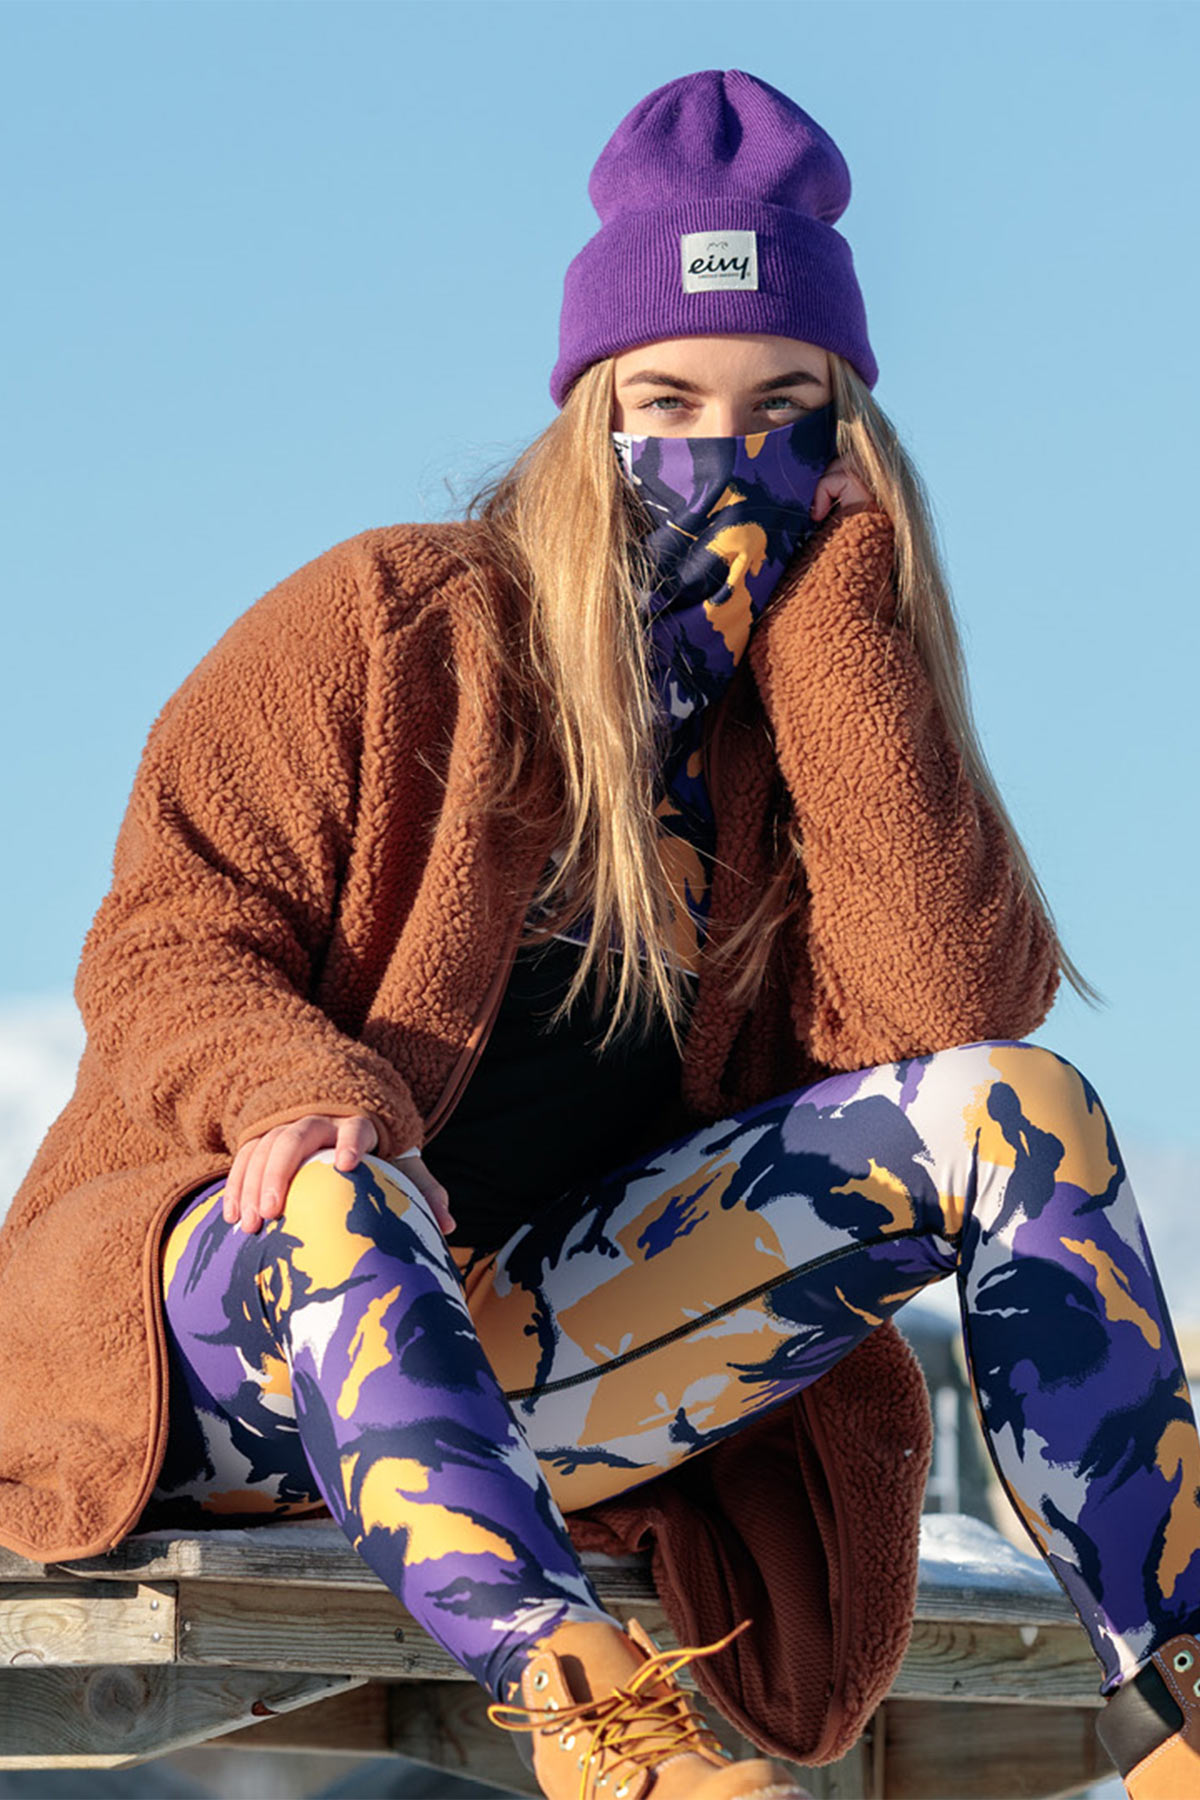 Underställ | Icecold Gaiter Top - Mountain Splash Purple | S